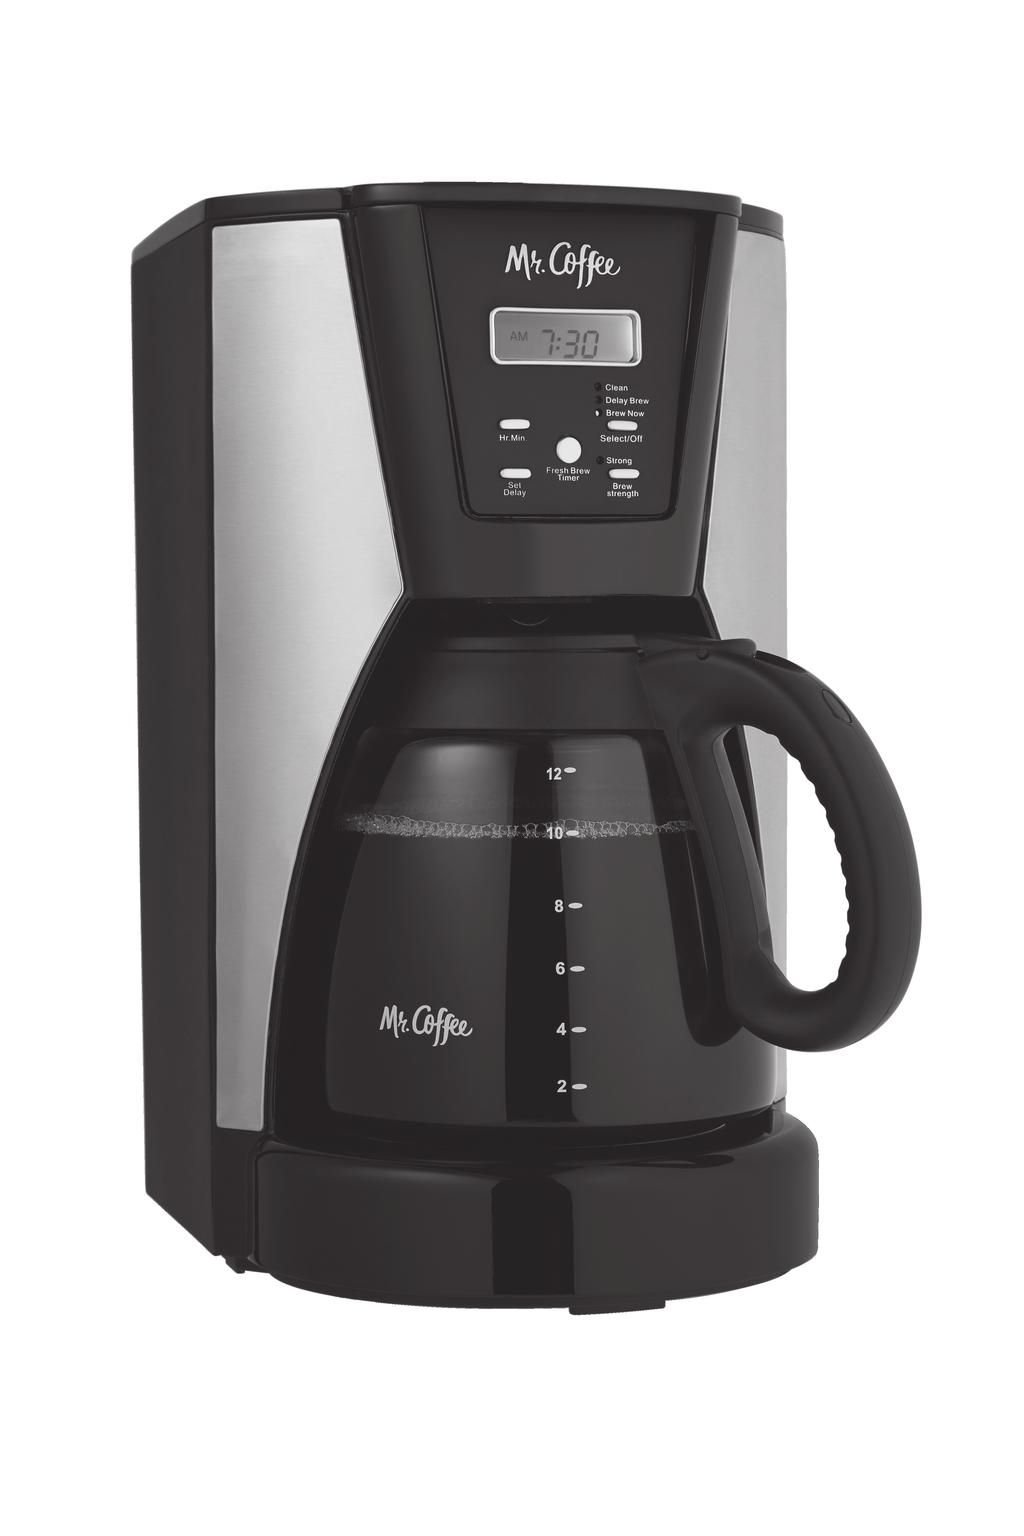 User Manual / Manual del Usuario Coffeemaker / Cafetera BVMC-IMX41 2016 Sunbeam Products, Inc. doing business as Jarden Consumer Solutions. All rights reserved. Distributed by Sunbeam Products, Inc.